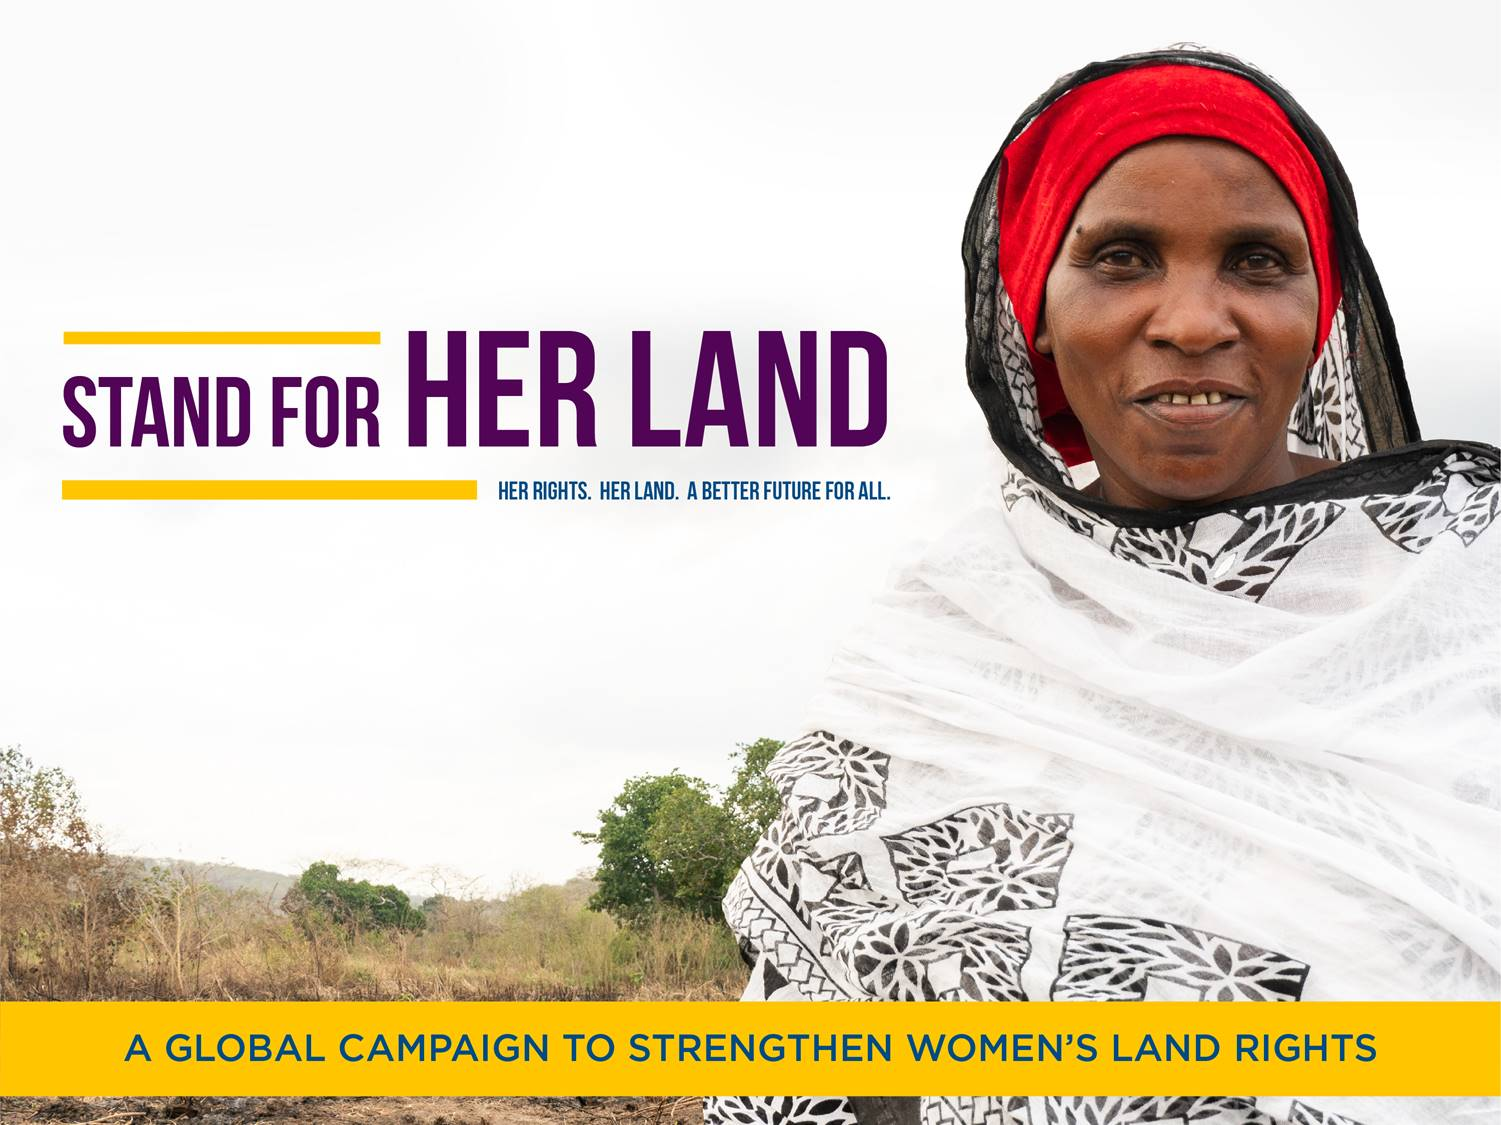 Tanzania S4HL Coalition mobilizes - A global campaign to strengthen women's land rights